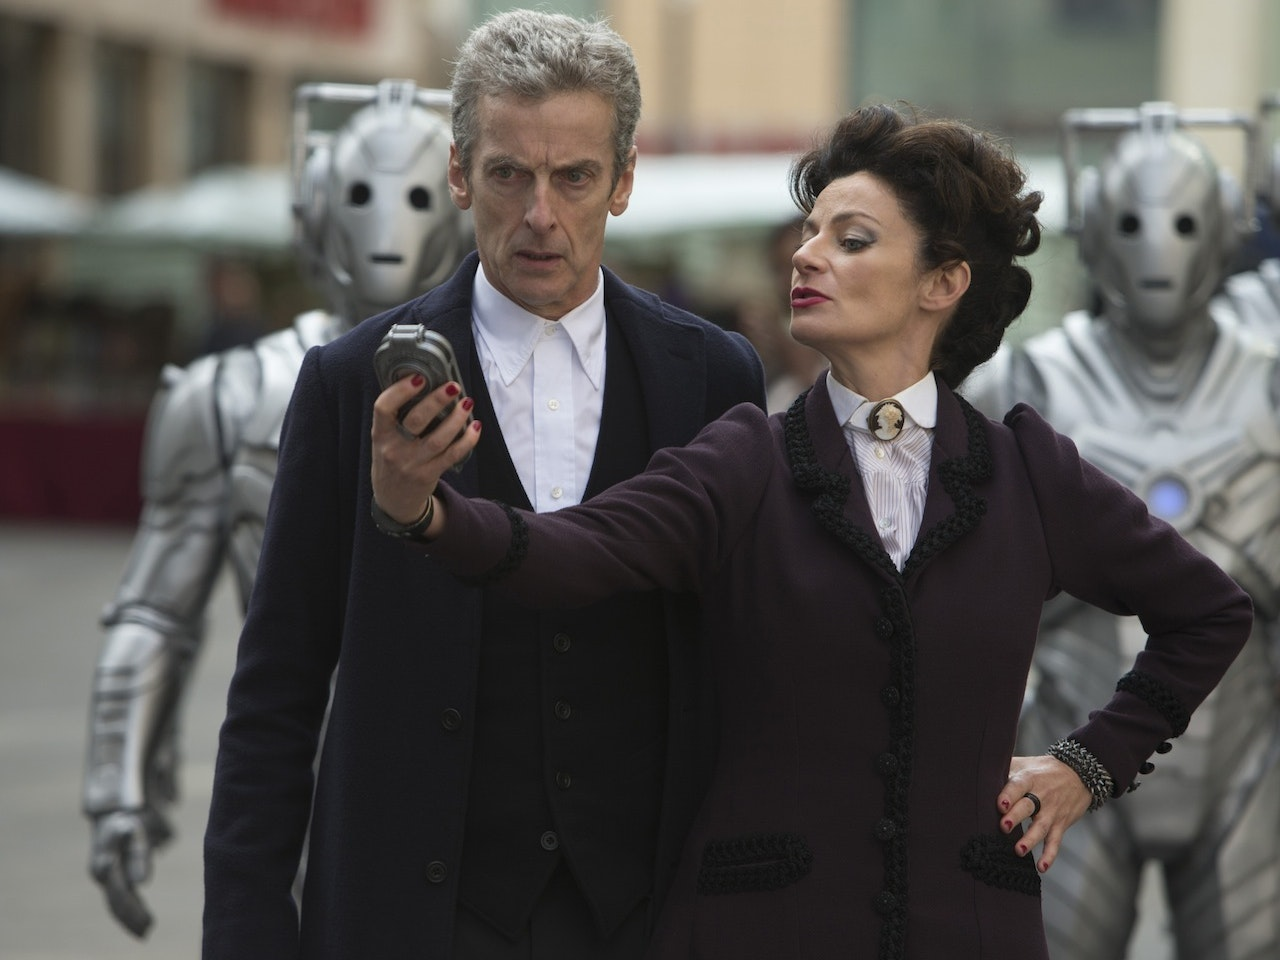 The Doctor and the Master Might Be Siblings on 'Doctor Who'